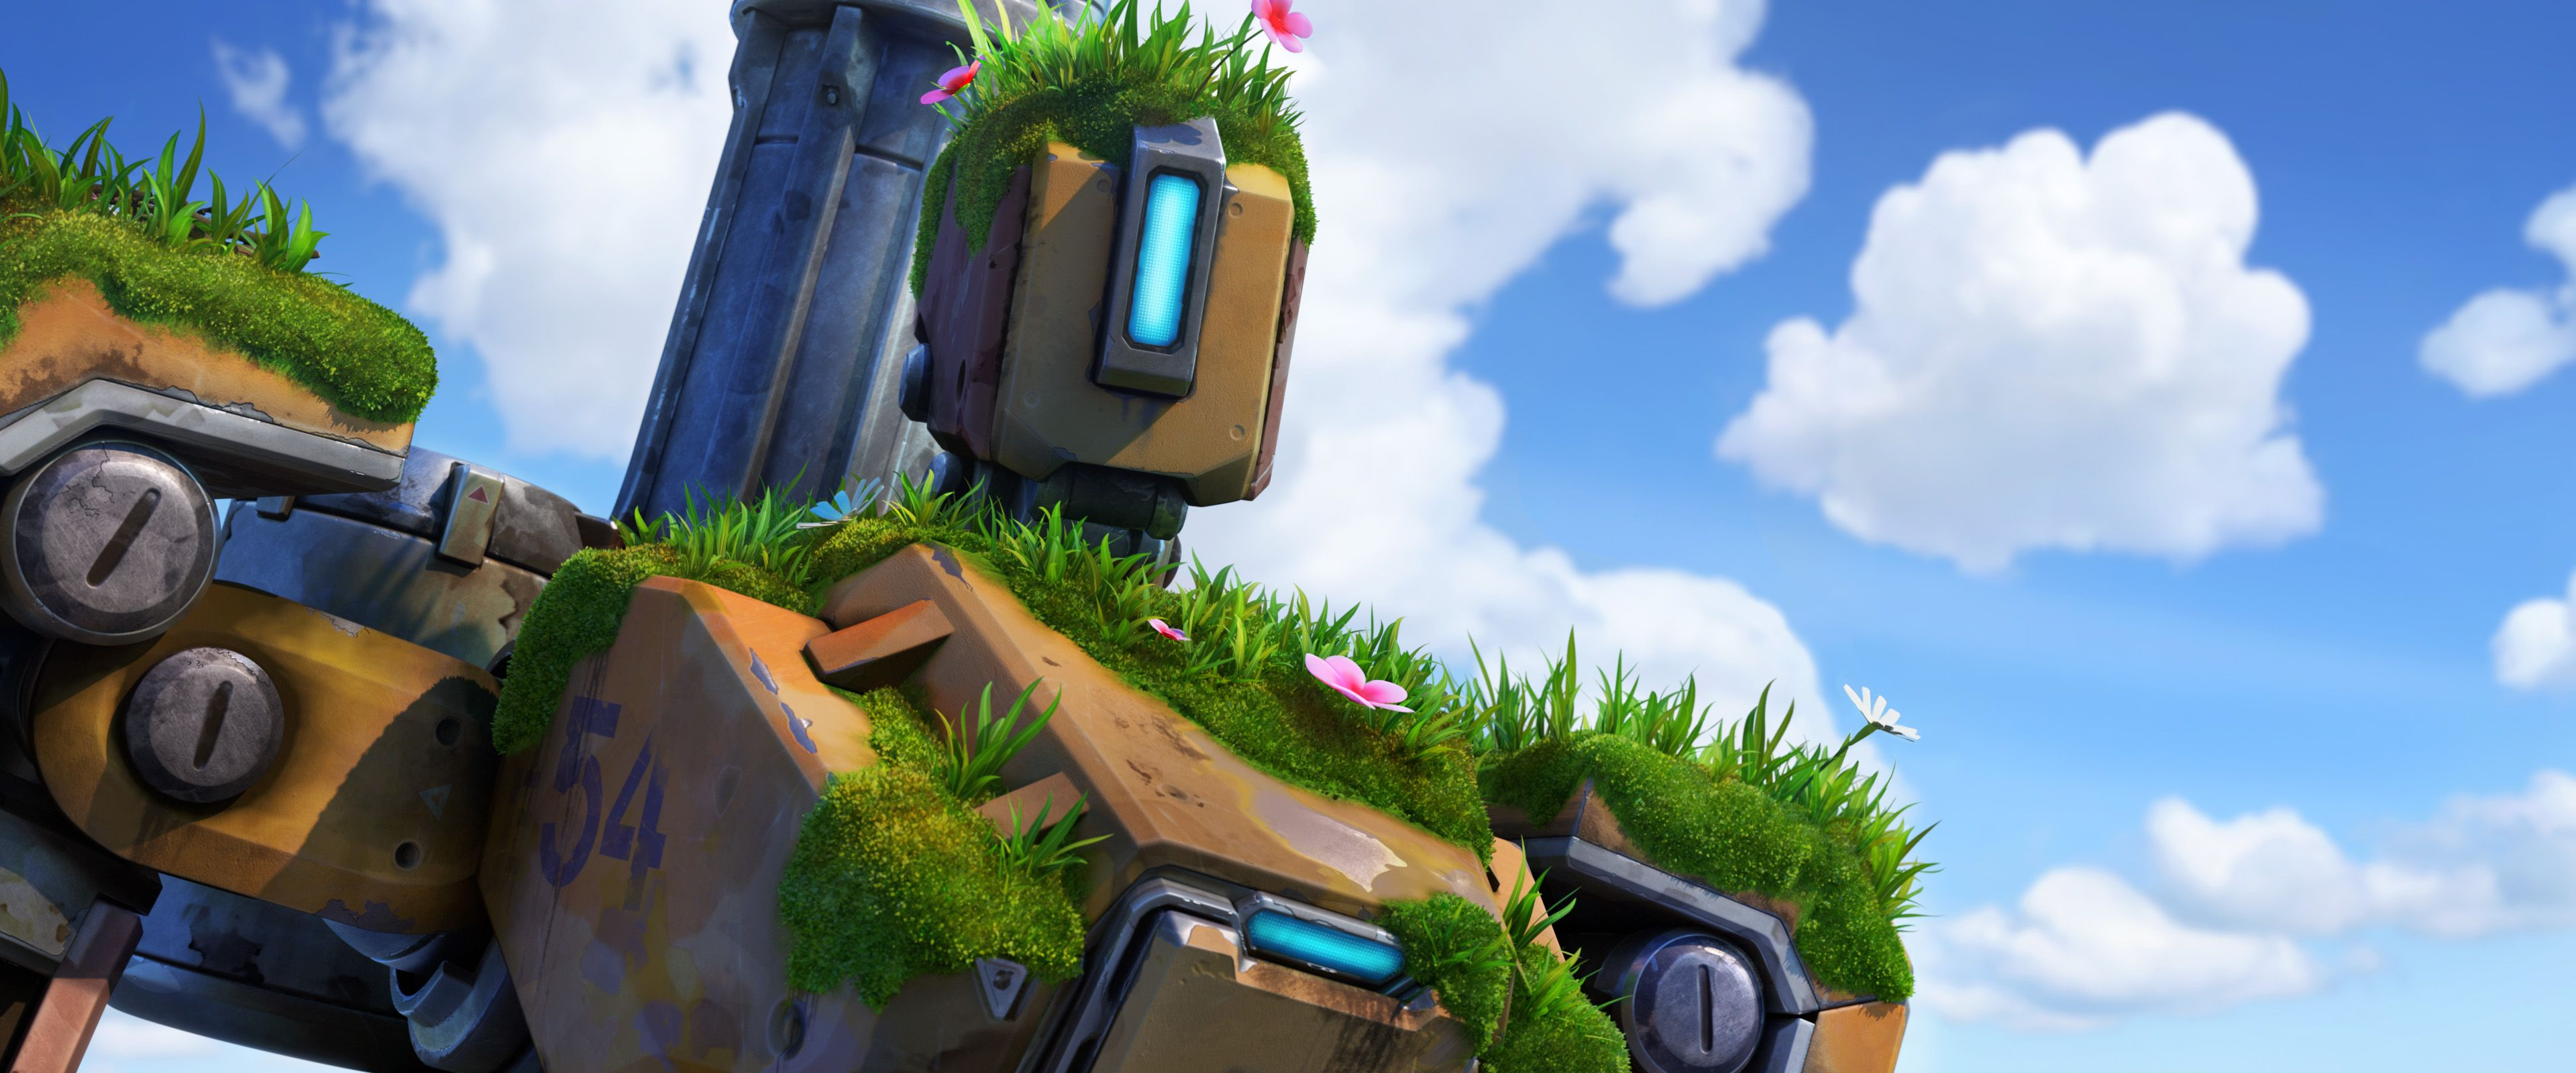 43 Bastion Overwatch Fonds D Ecran Hd Arriere Plans